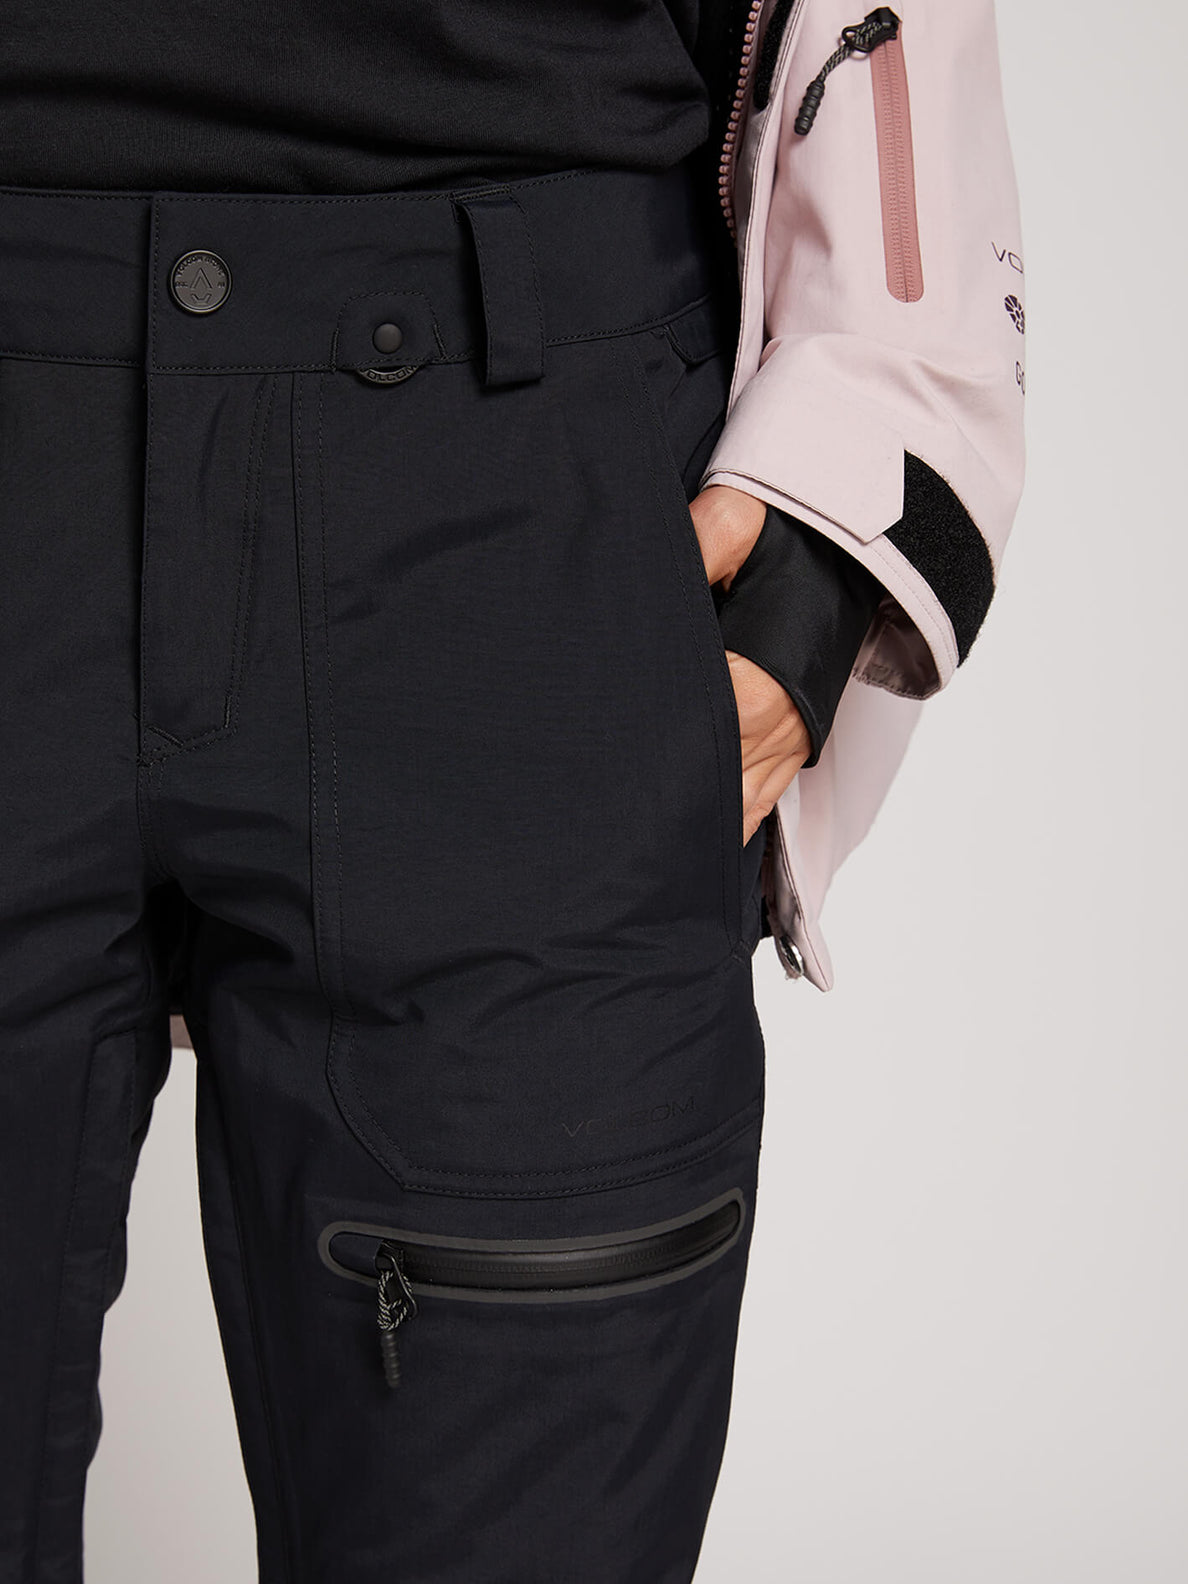 Knox Insulated Gore-tex Pant In Black, Alternate View